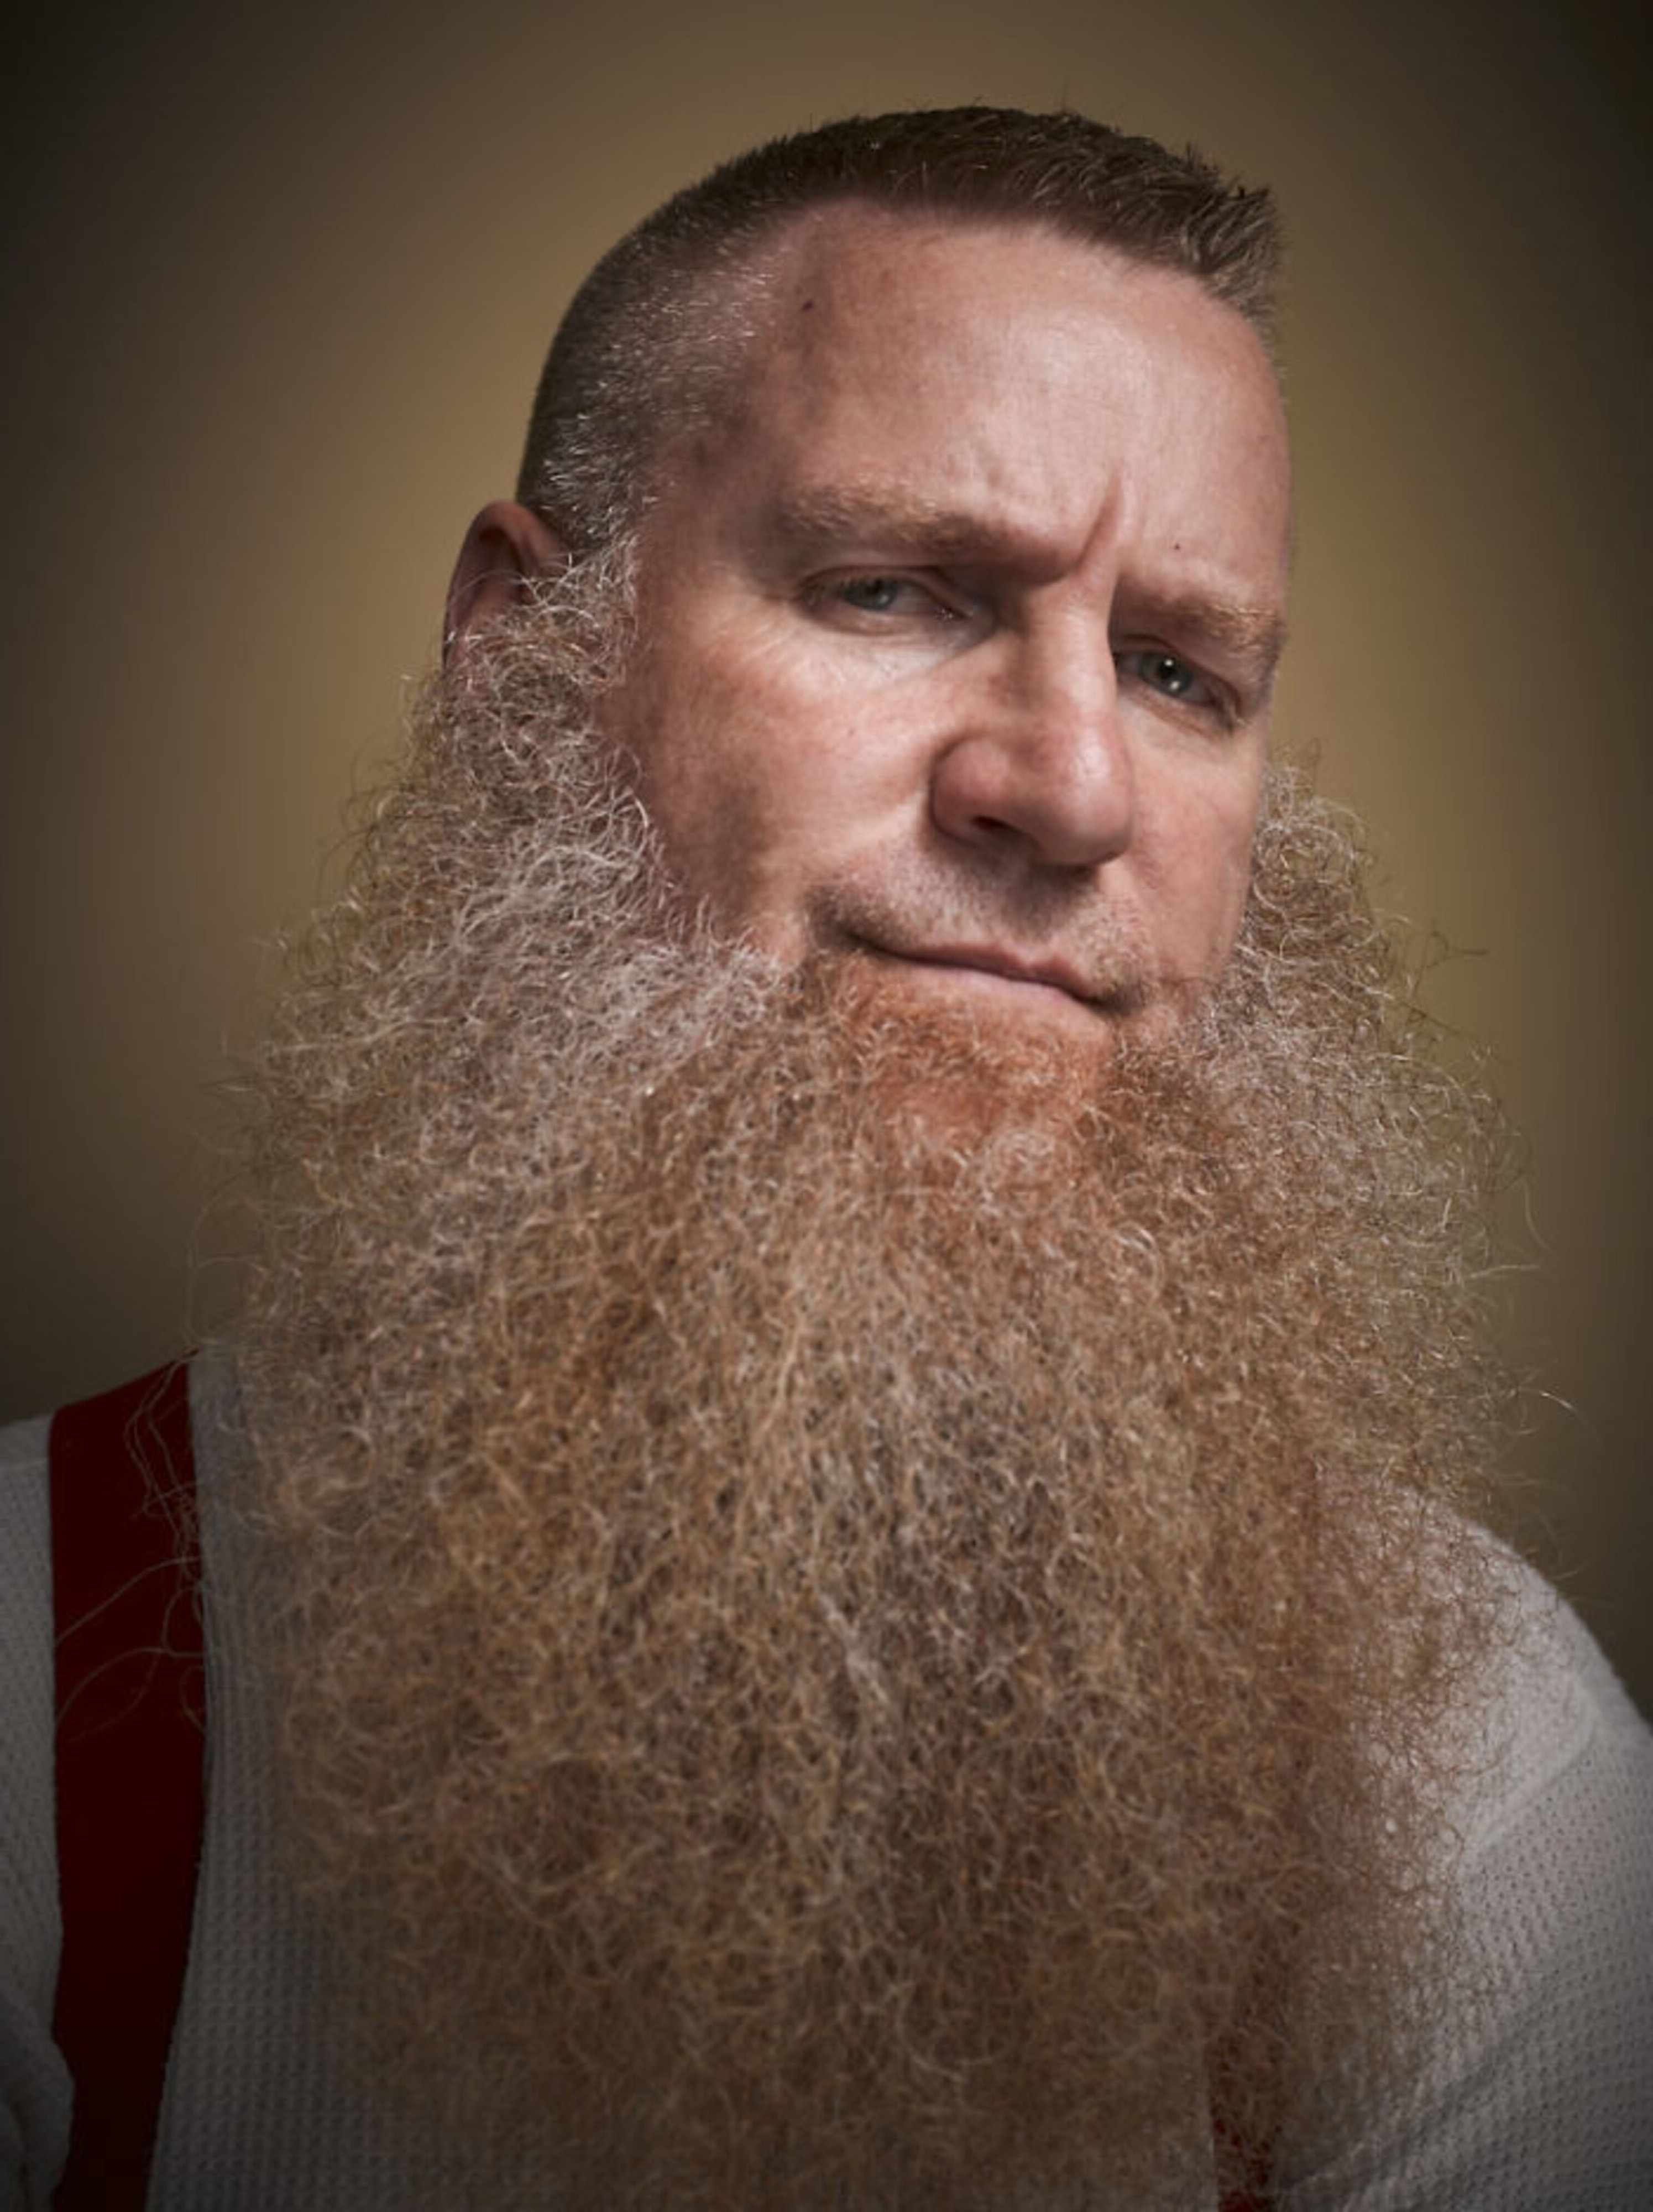 A long beard look without a mustache.